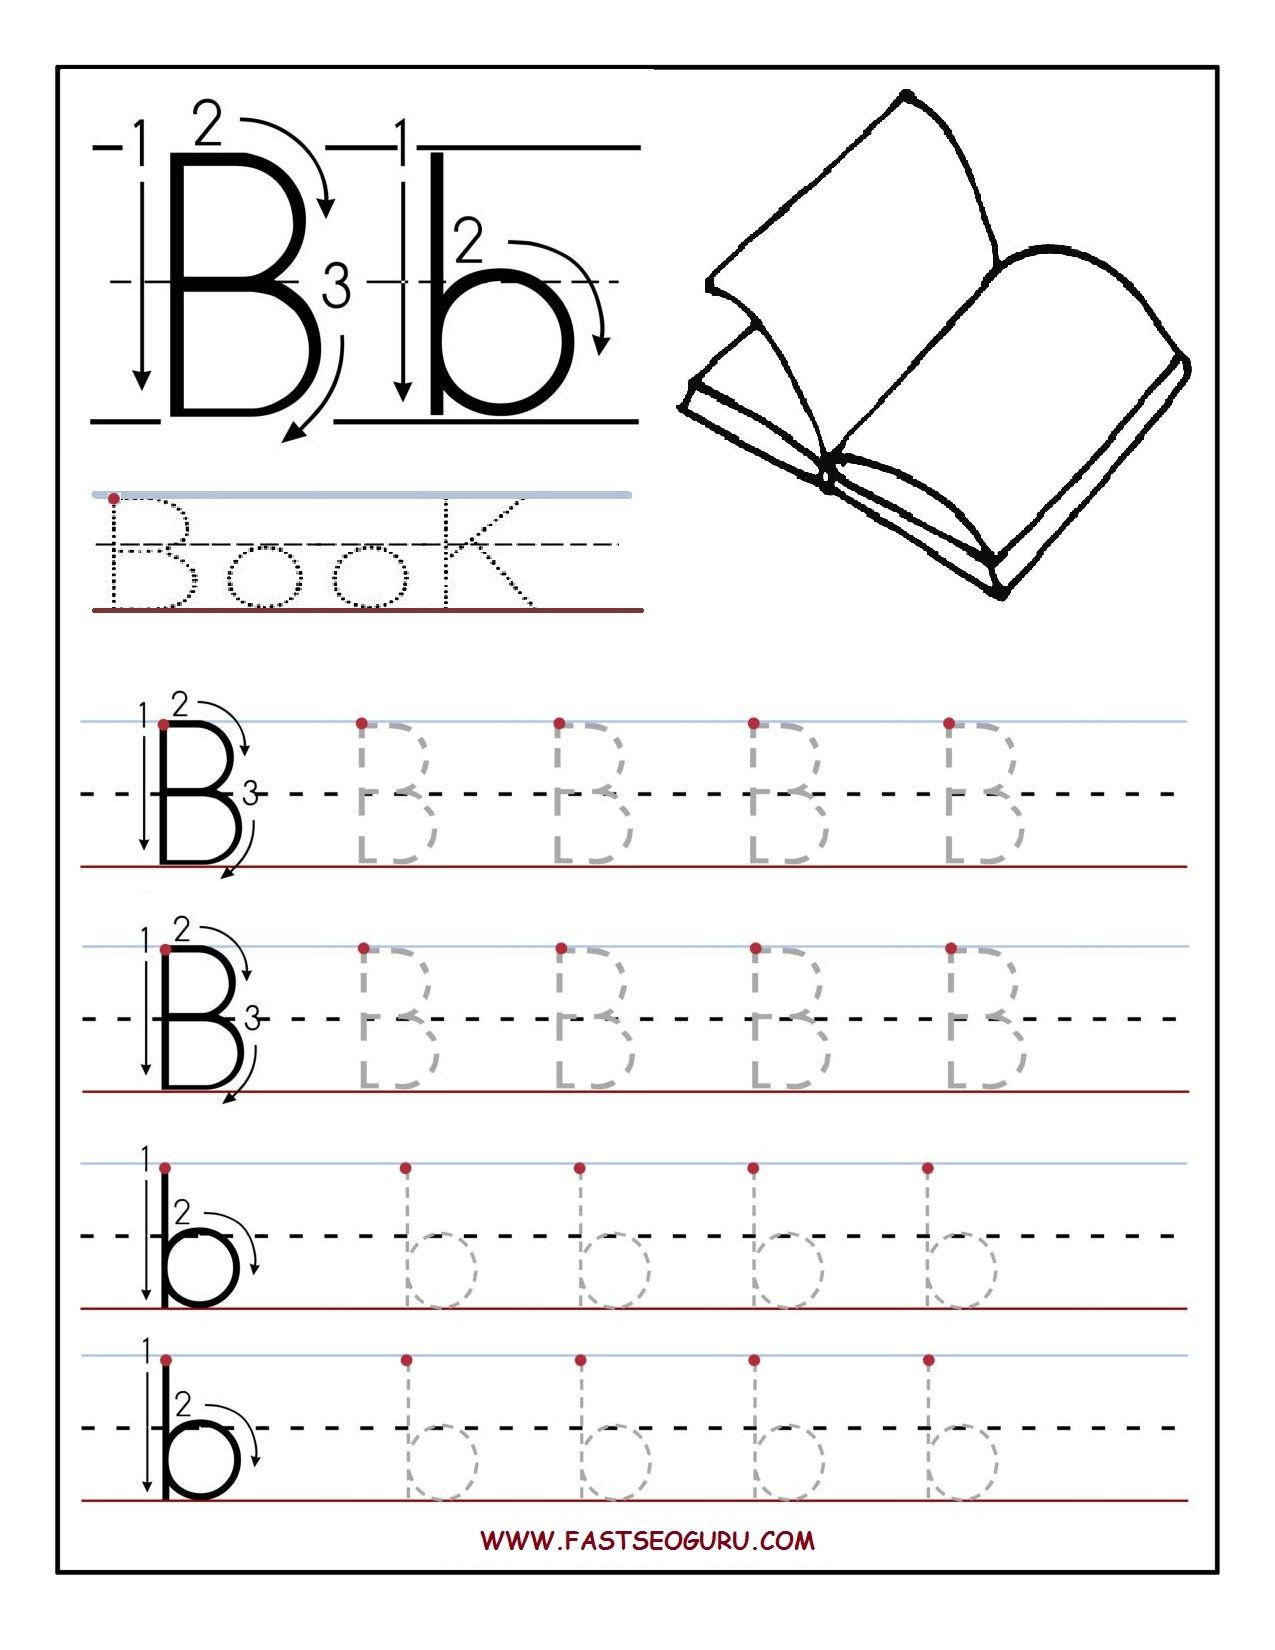 Printable Letter B Tracing Worksheets For Preschool pertaining to Letter B Worksheets Printable